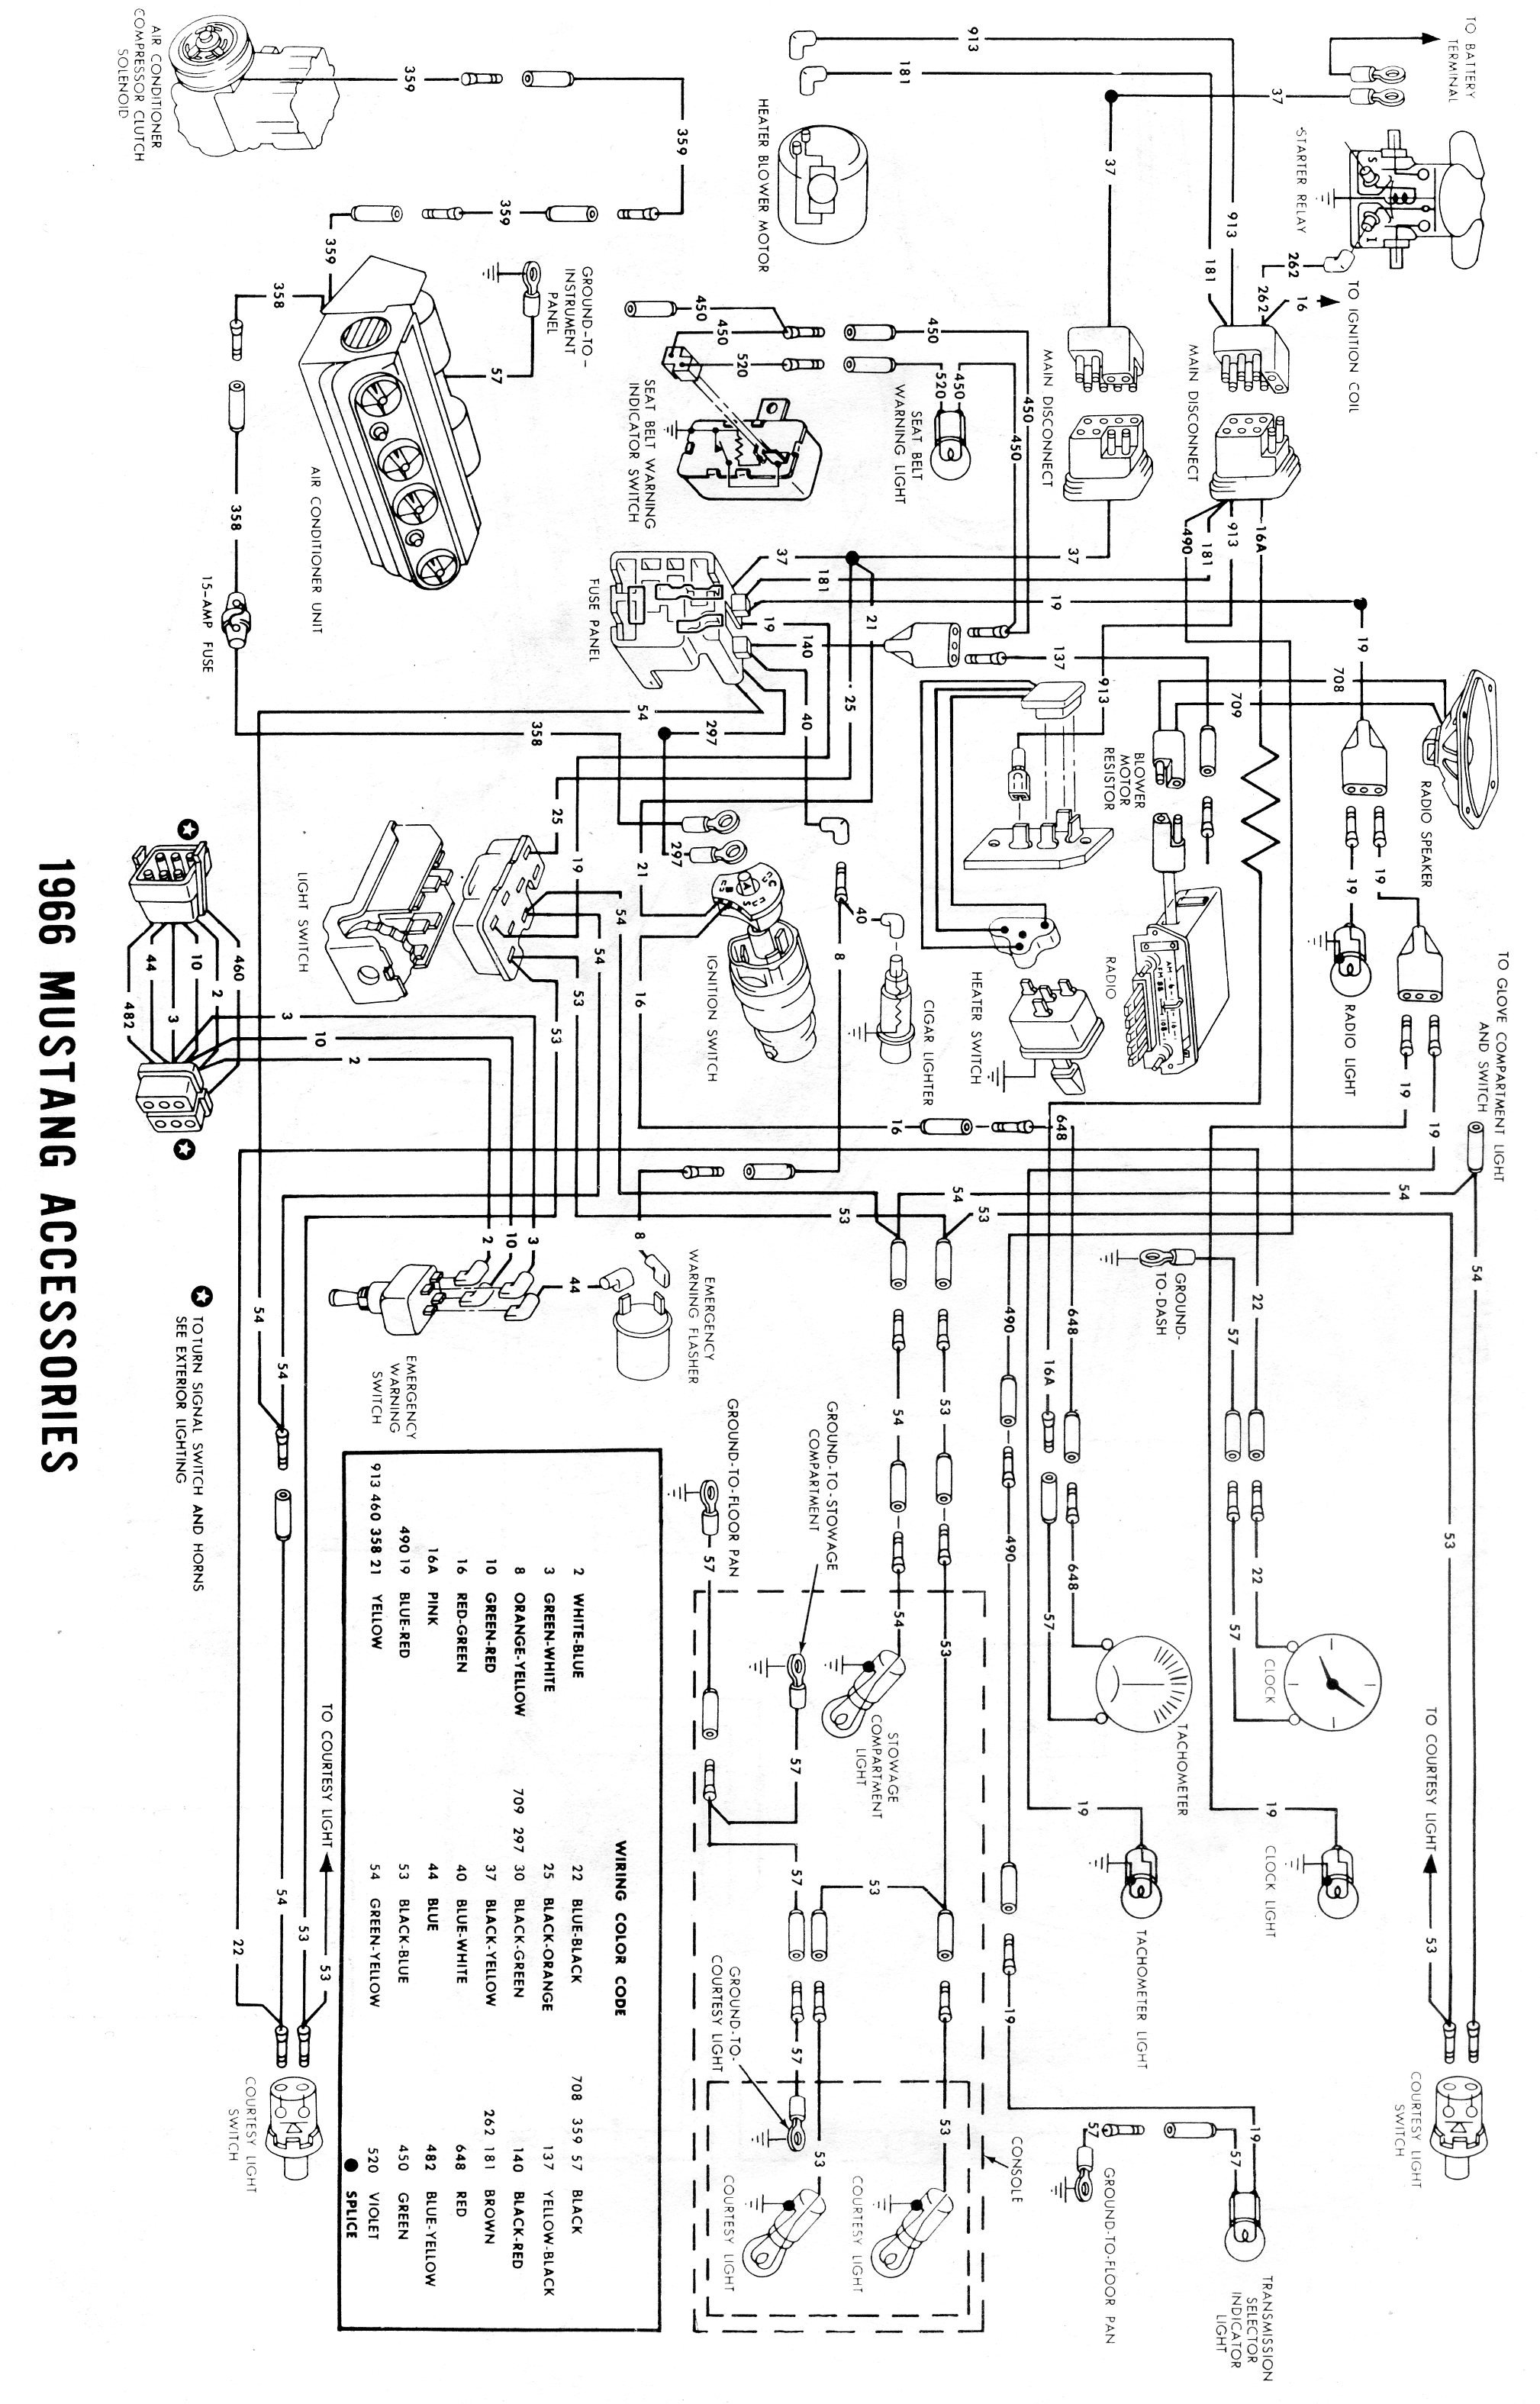 1971 Camaro Wiring Schematic Why Does My Instrument Fuse Keep Blowing Out Ford